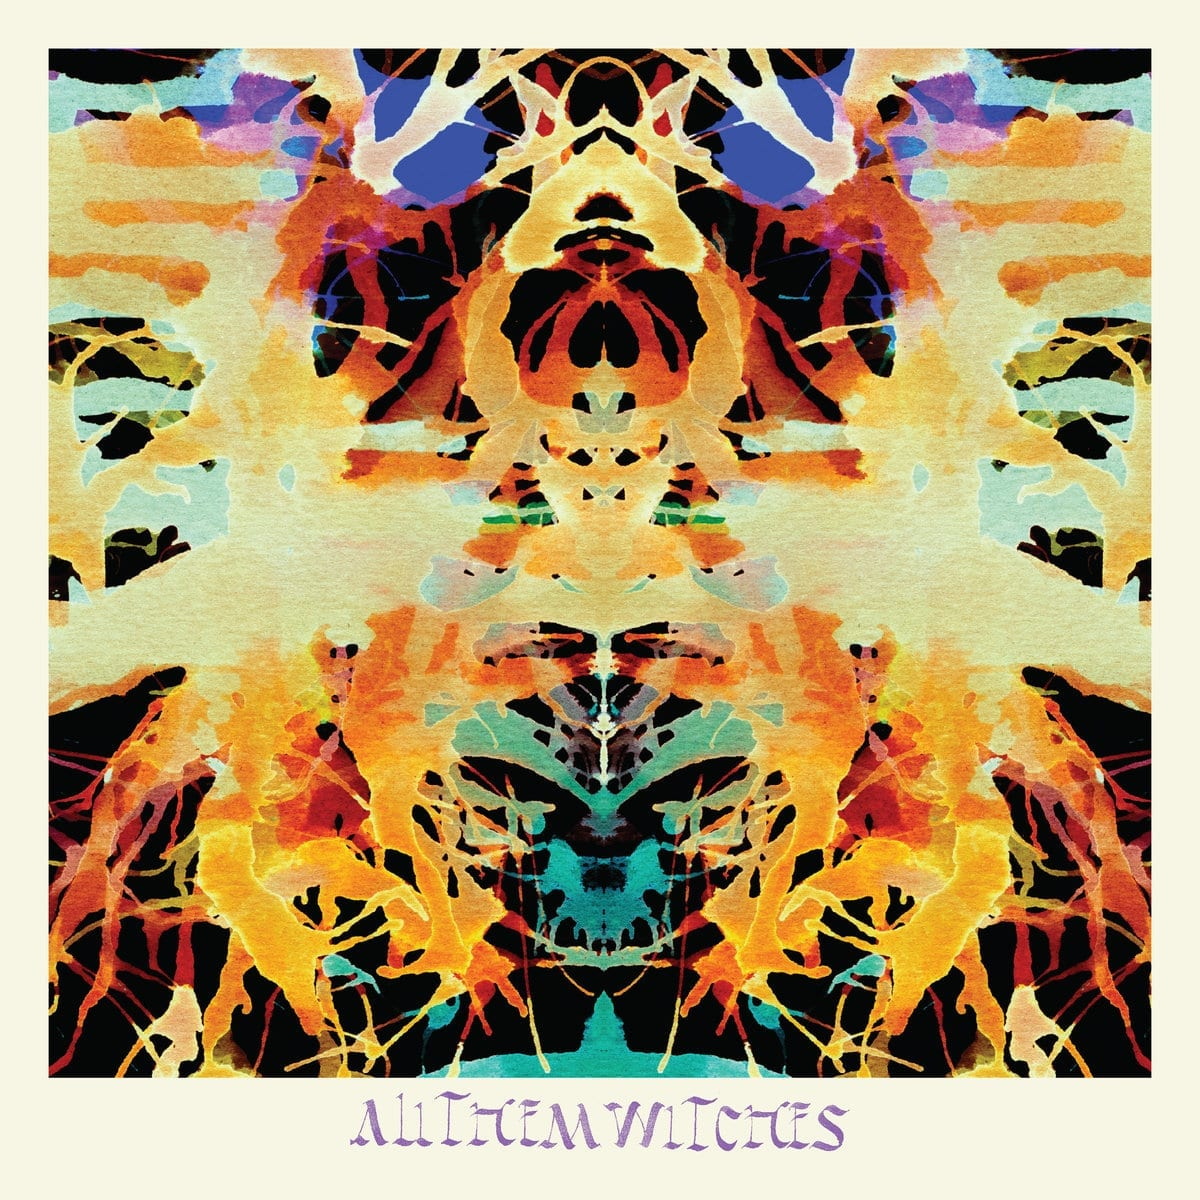 6. All Them Witches - Sleeping Through The War